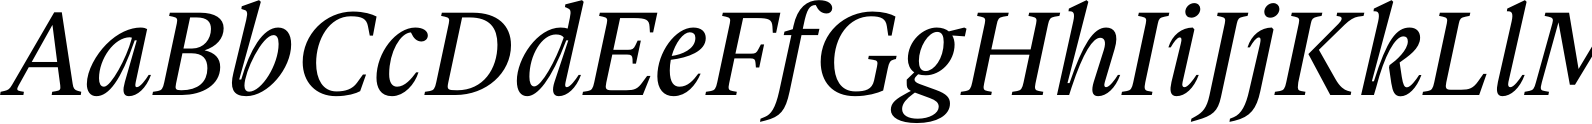 Gauthier Next FY Medium Italic Font